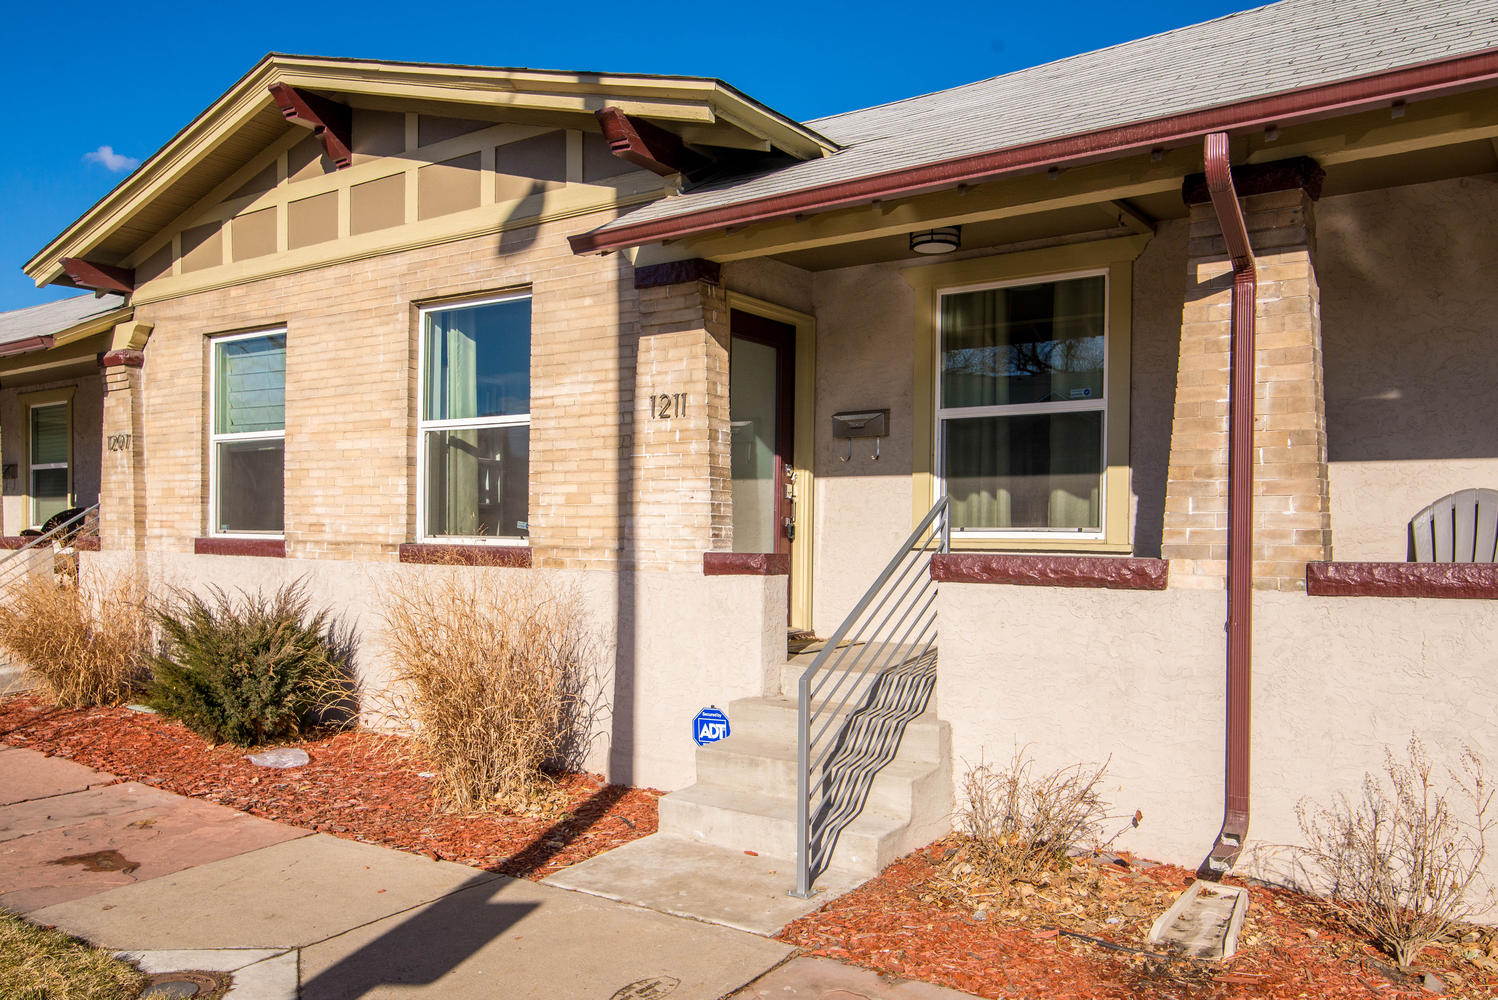 Single Family Home for Sale at Renovated row home on edge of Curtis Park 1211 E 26th Ave Whittier, Denver, Colorado 80205 United States